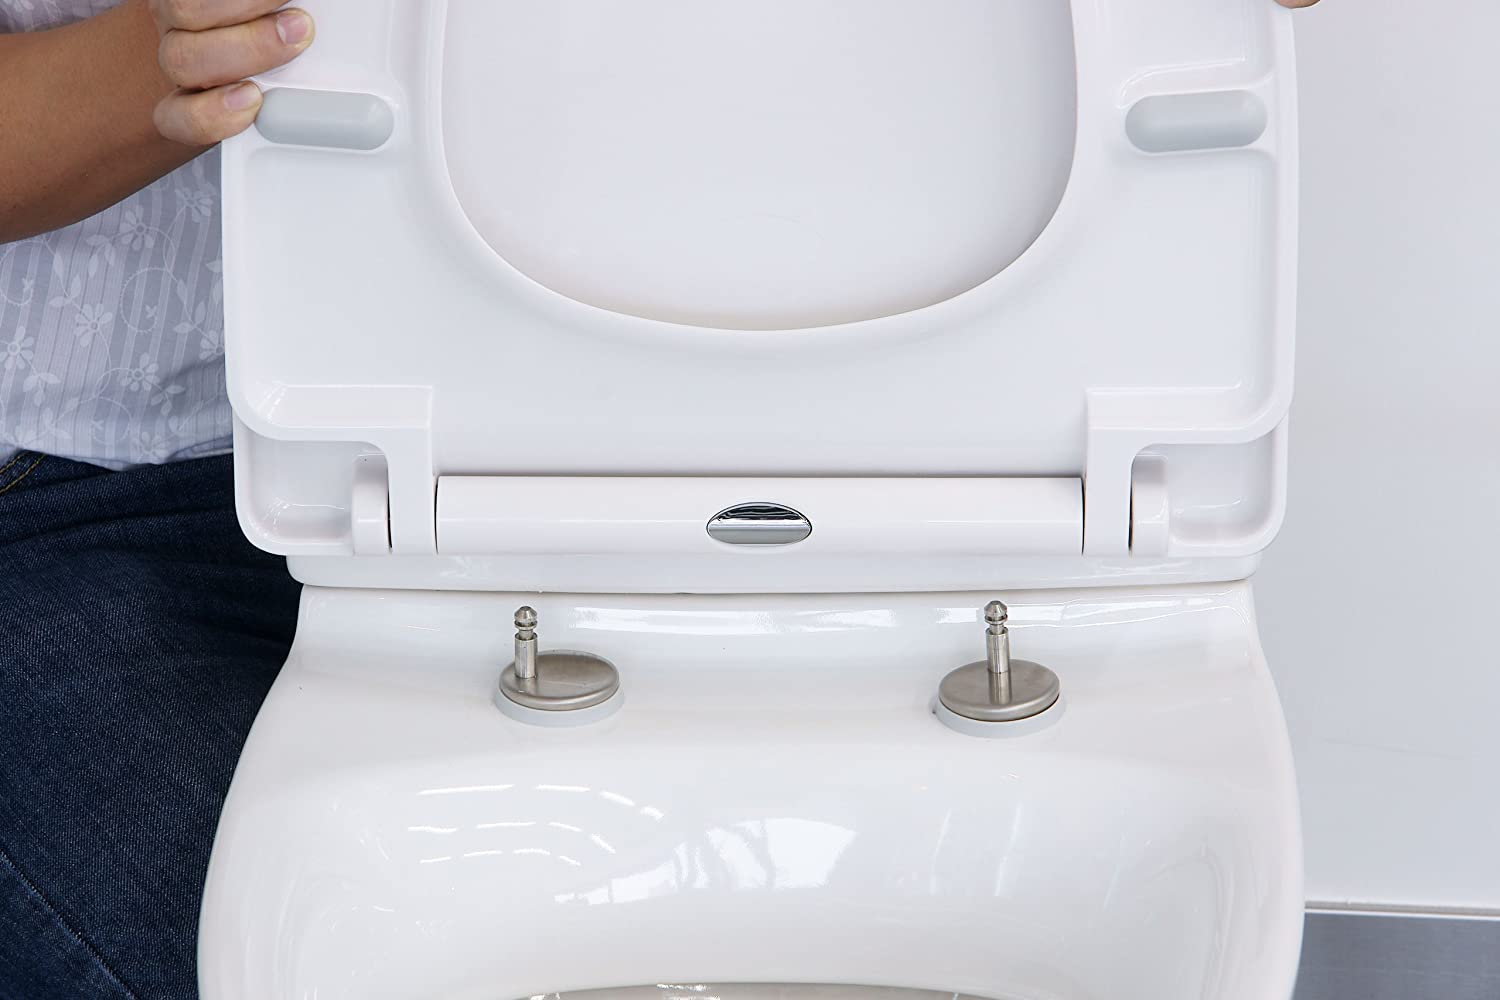 Euroshowers White One Seat Soft Close Toilet with Top Fix Blind Hole  Fittings and ONE BUTTON Quick Release Amazon co uk DIY Tools